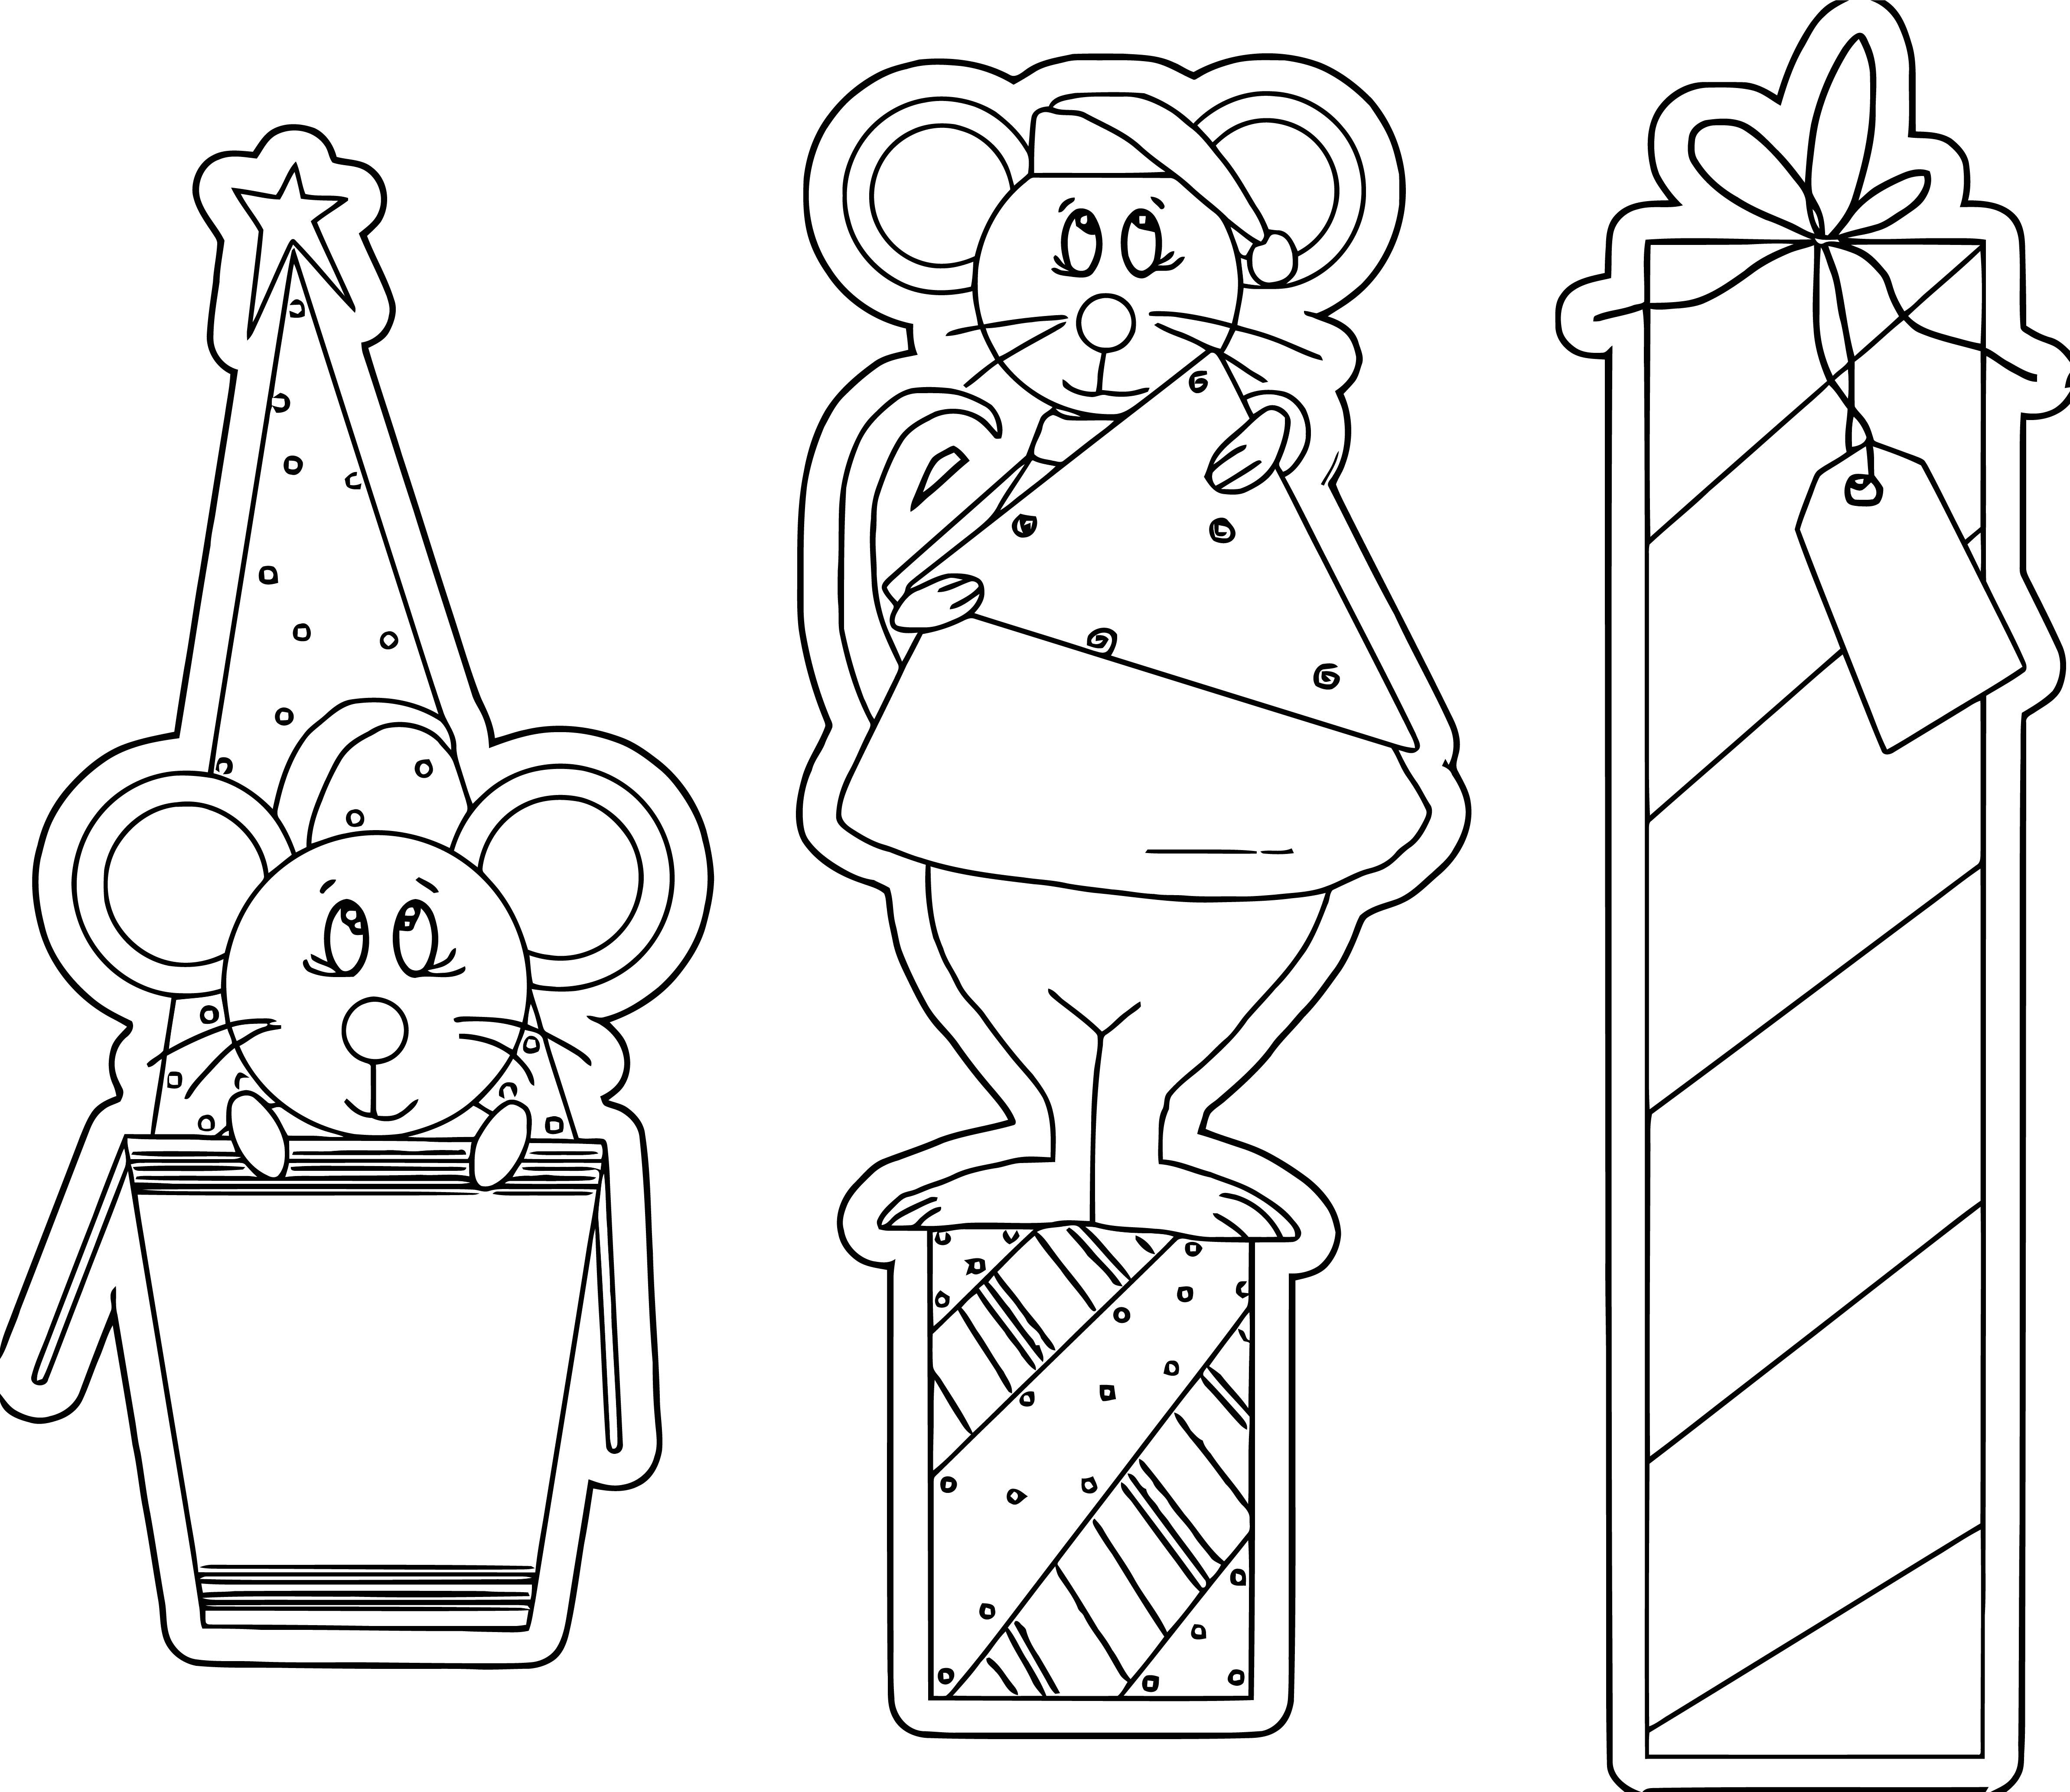 Mouse Jpeg Coloring Page 19